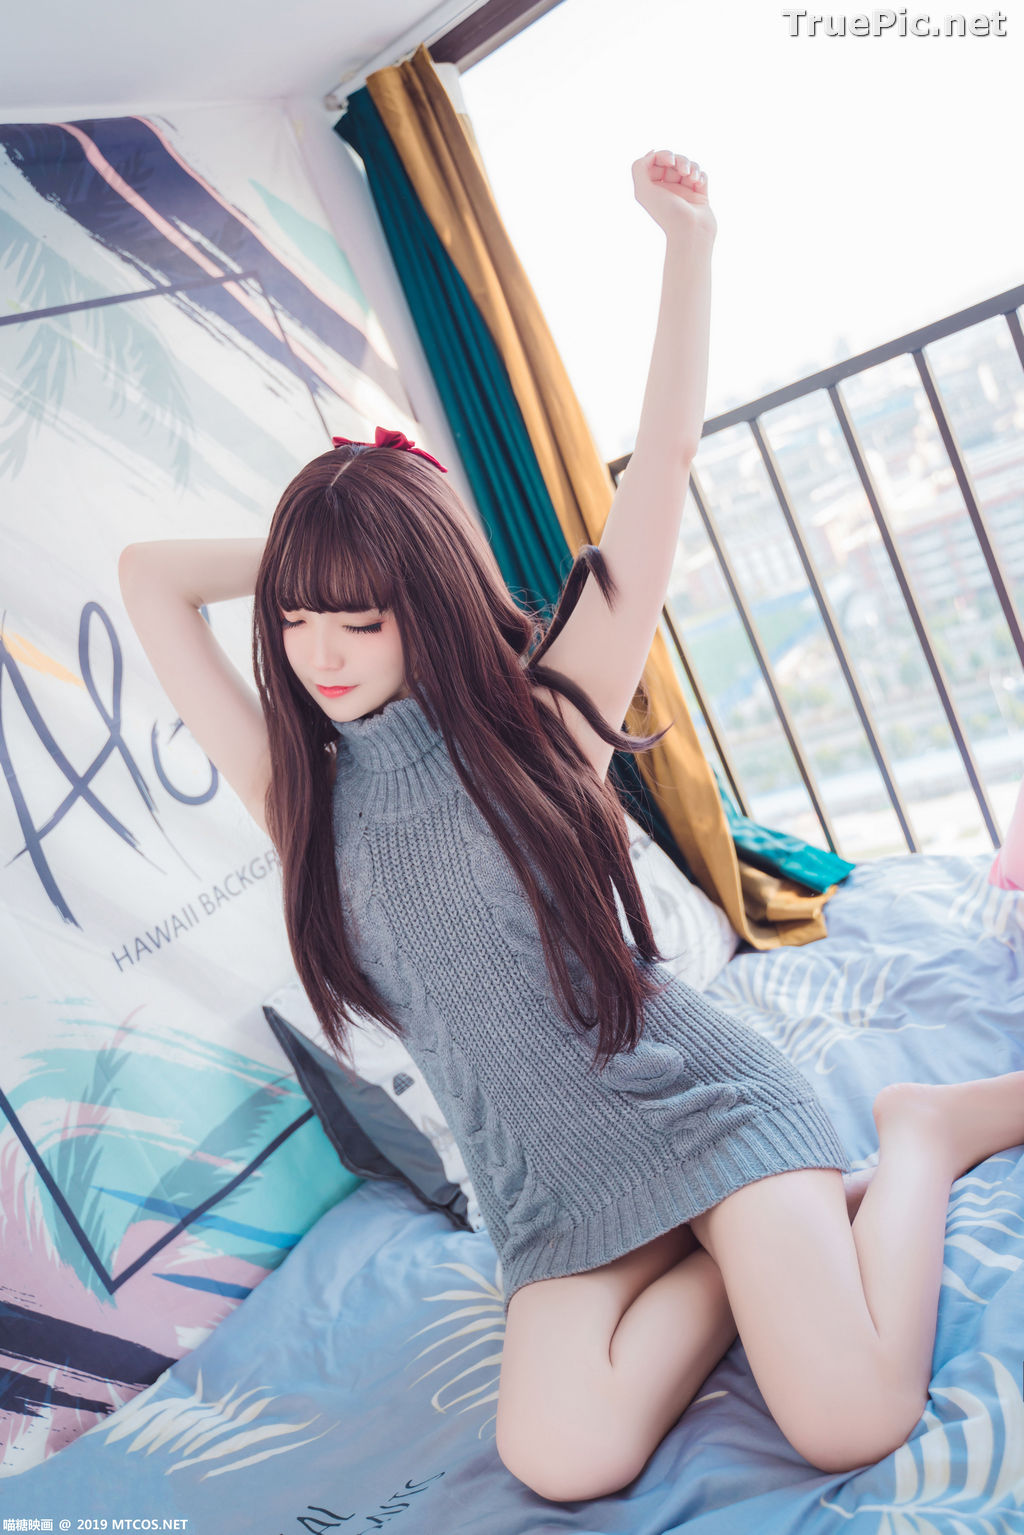 Image [MTCos] 喵糖映画 Vol.030 – Chinese Cute Model – Open Back Sweater - TruePic.net - Picture-13